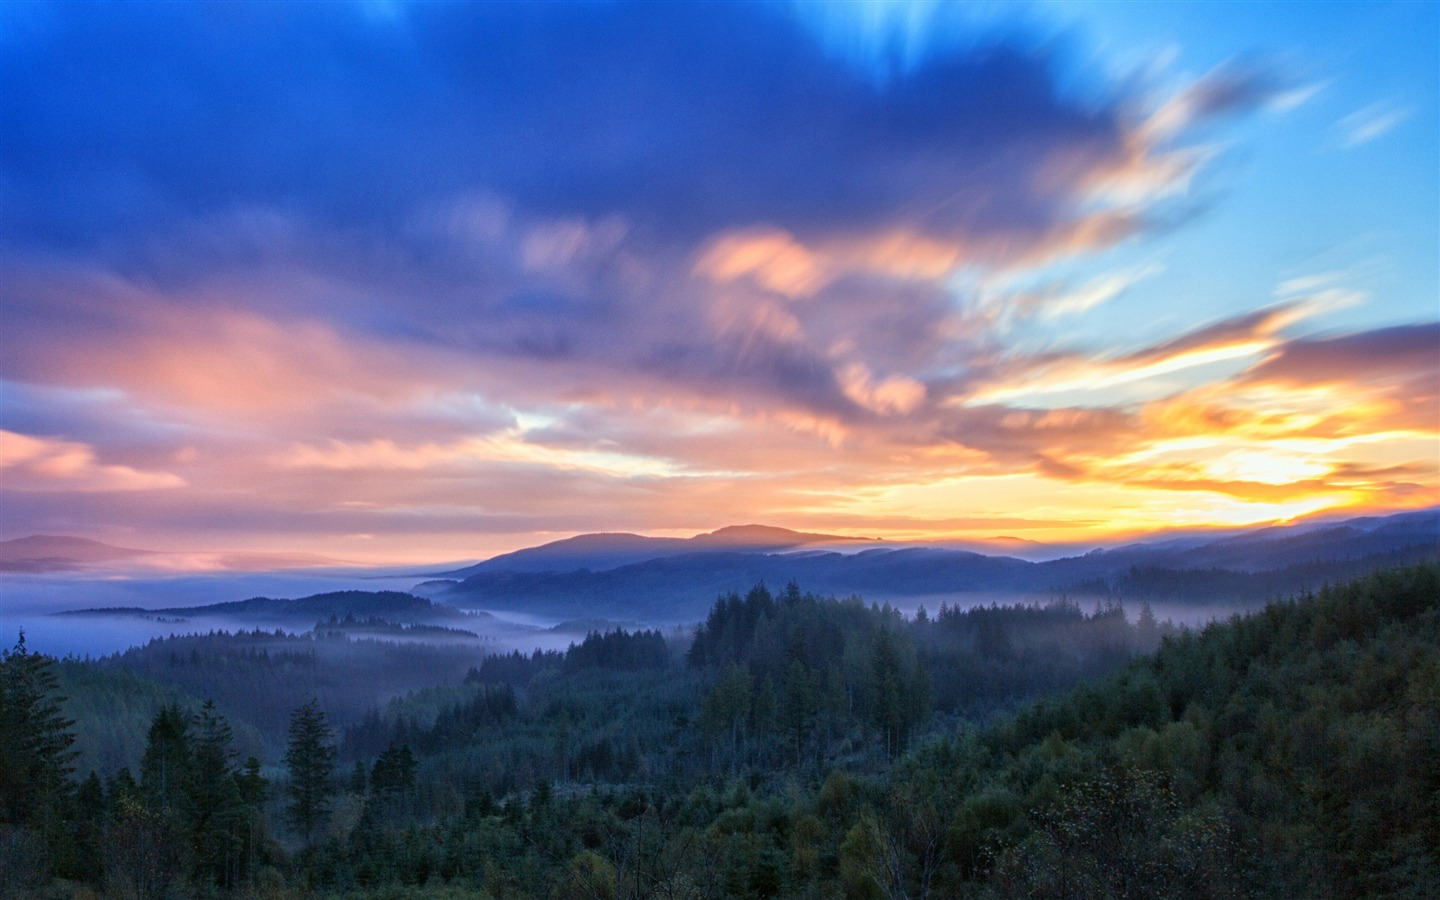 Forest sunrise clouds-Beautiful landscape wallpaper - 1440x900 wallpaper download